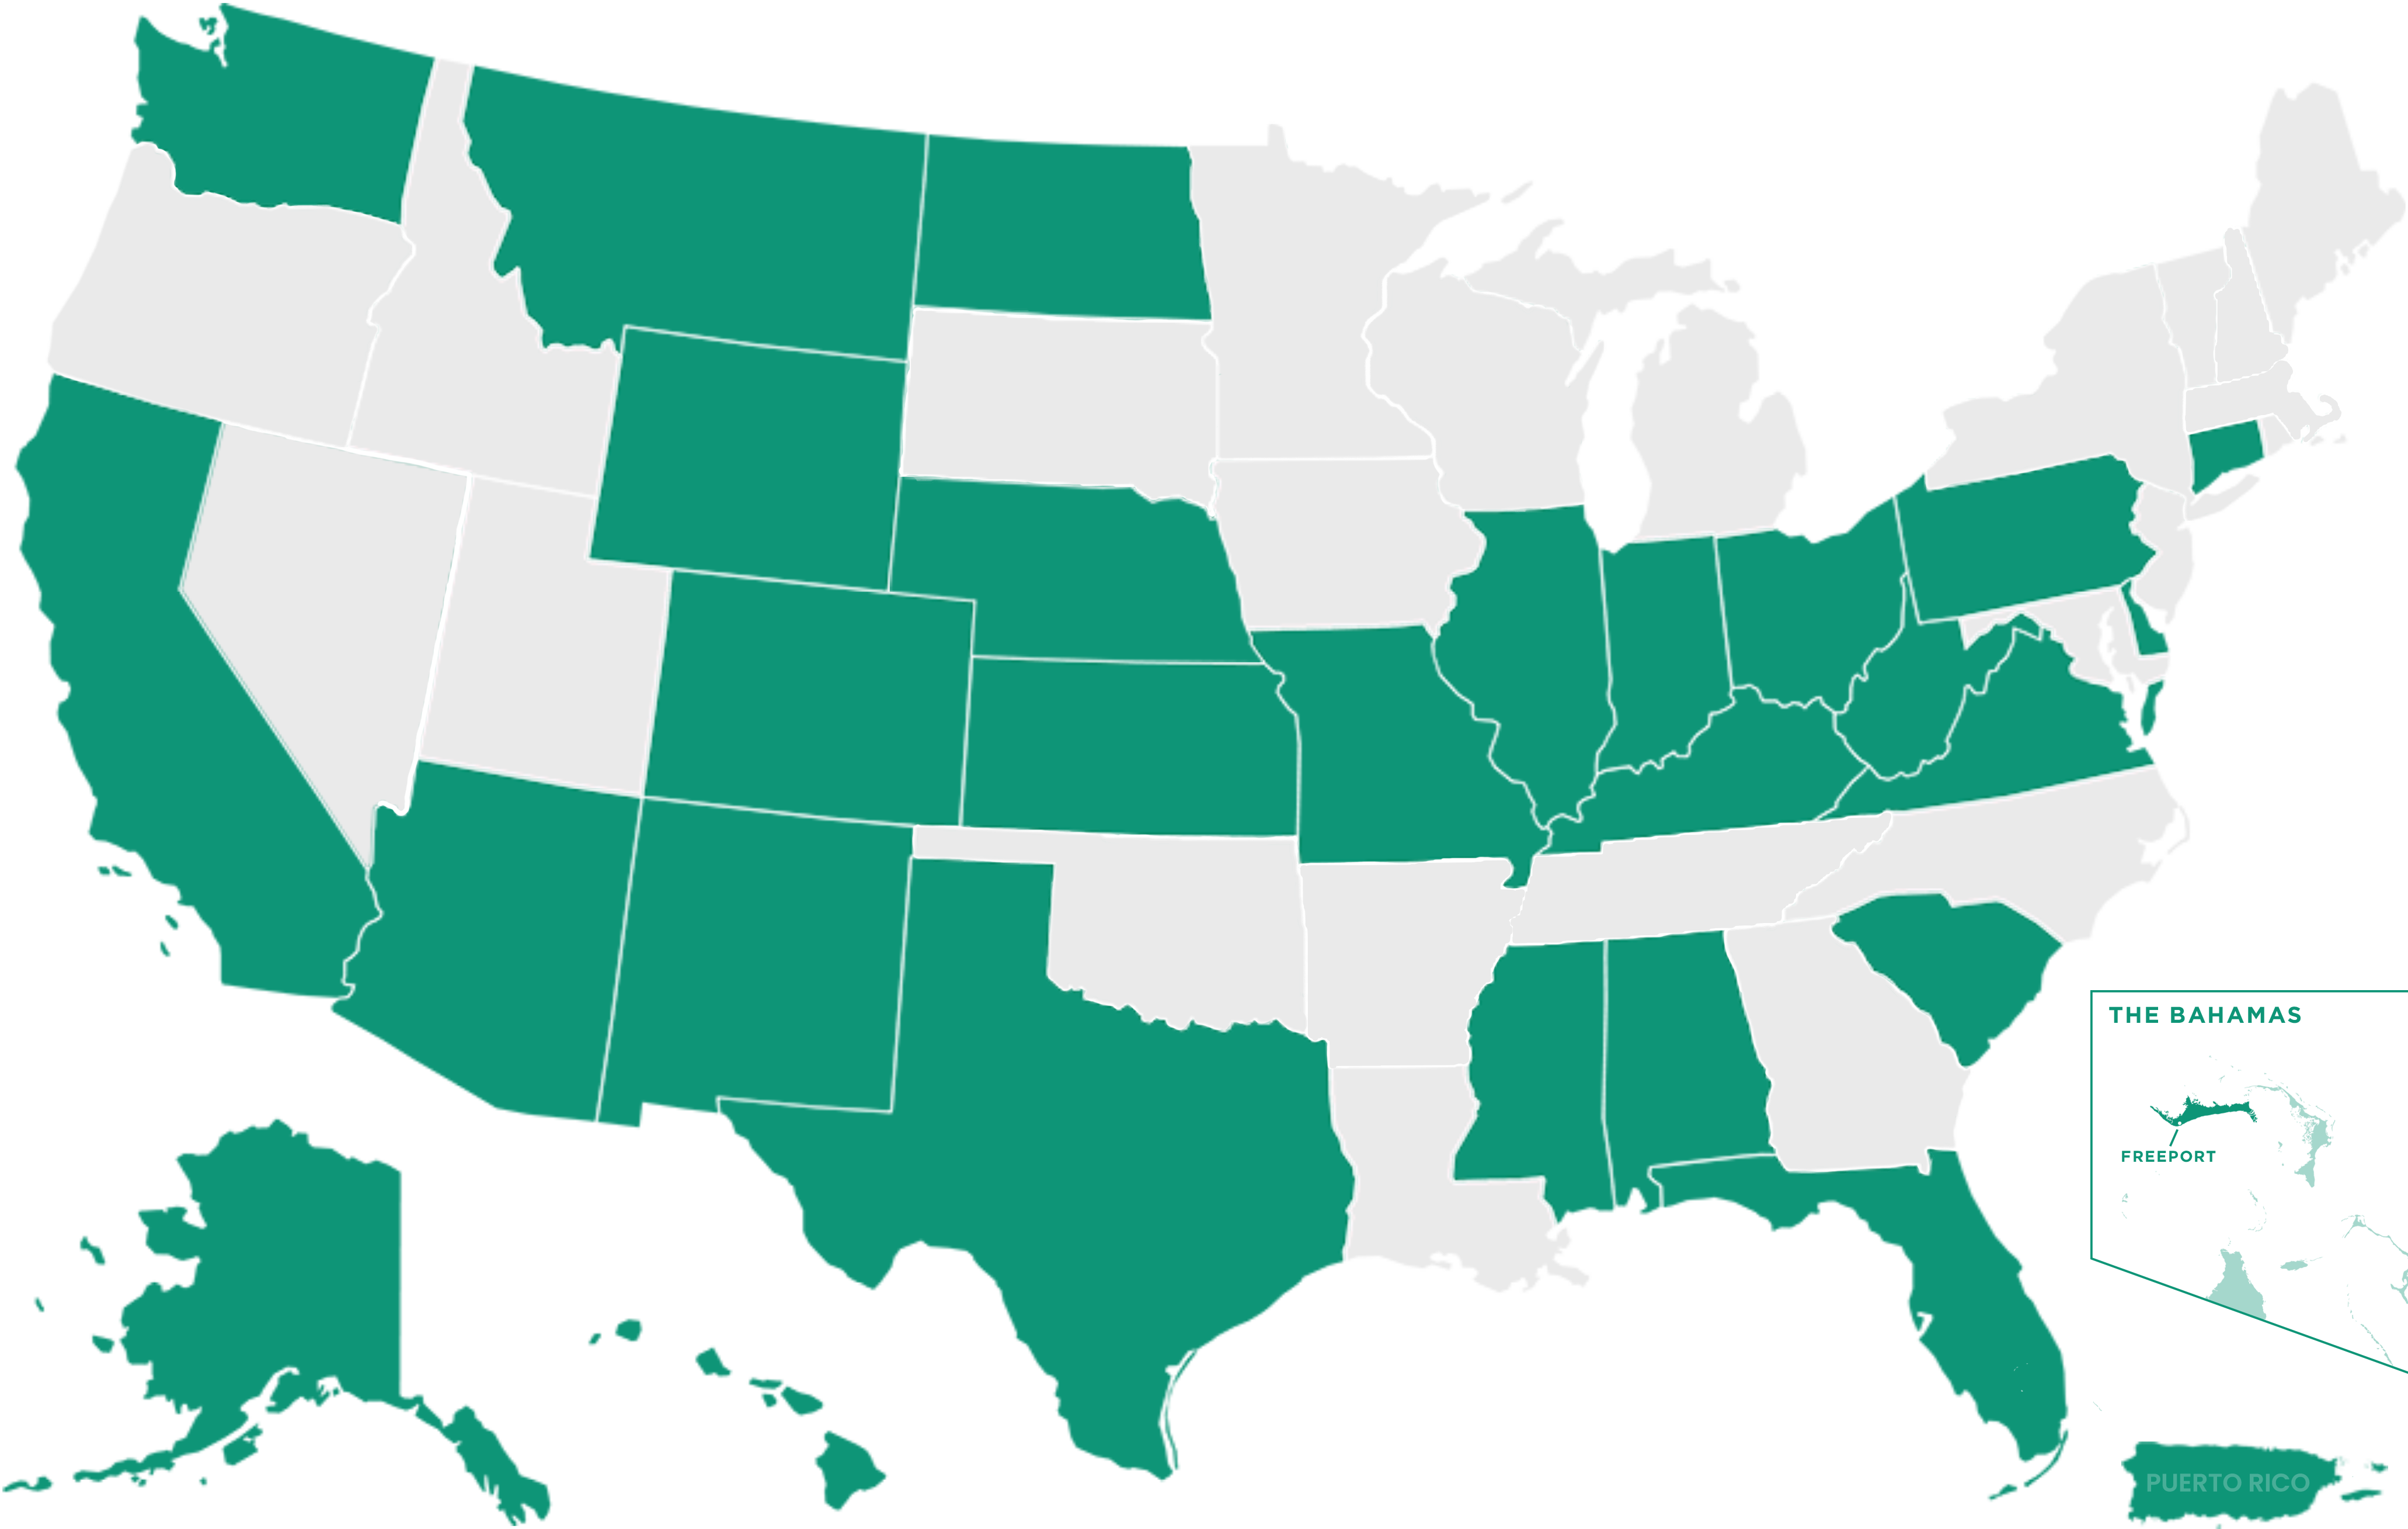 A map of the united states, highlighting the over 35 states which frey municipal software have software implemented.